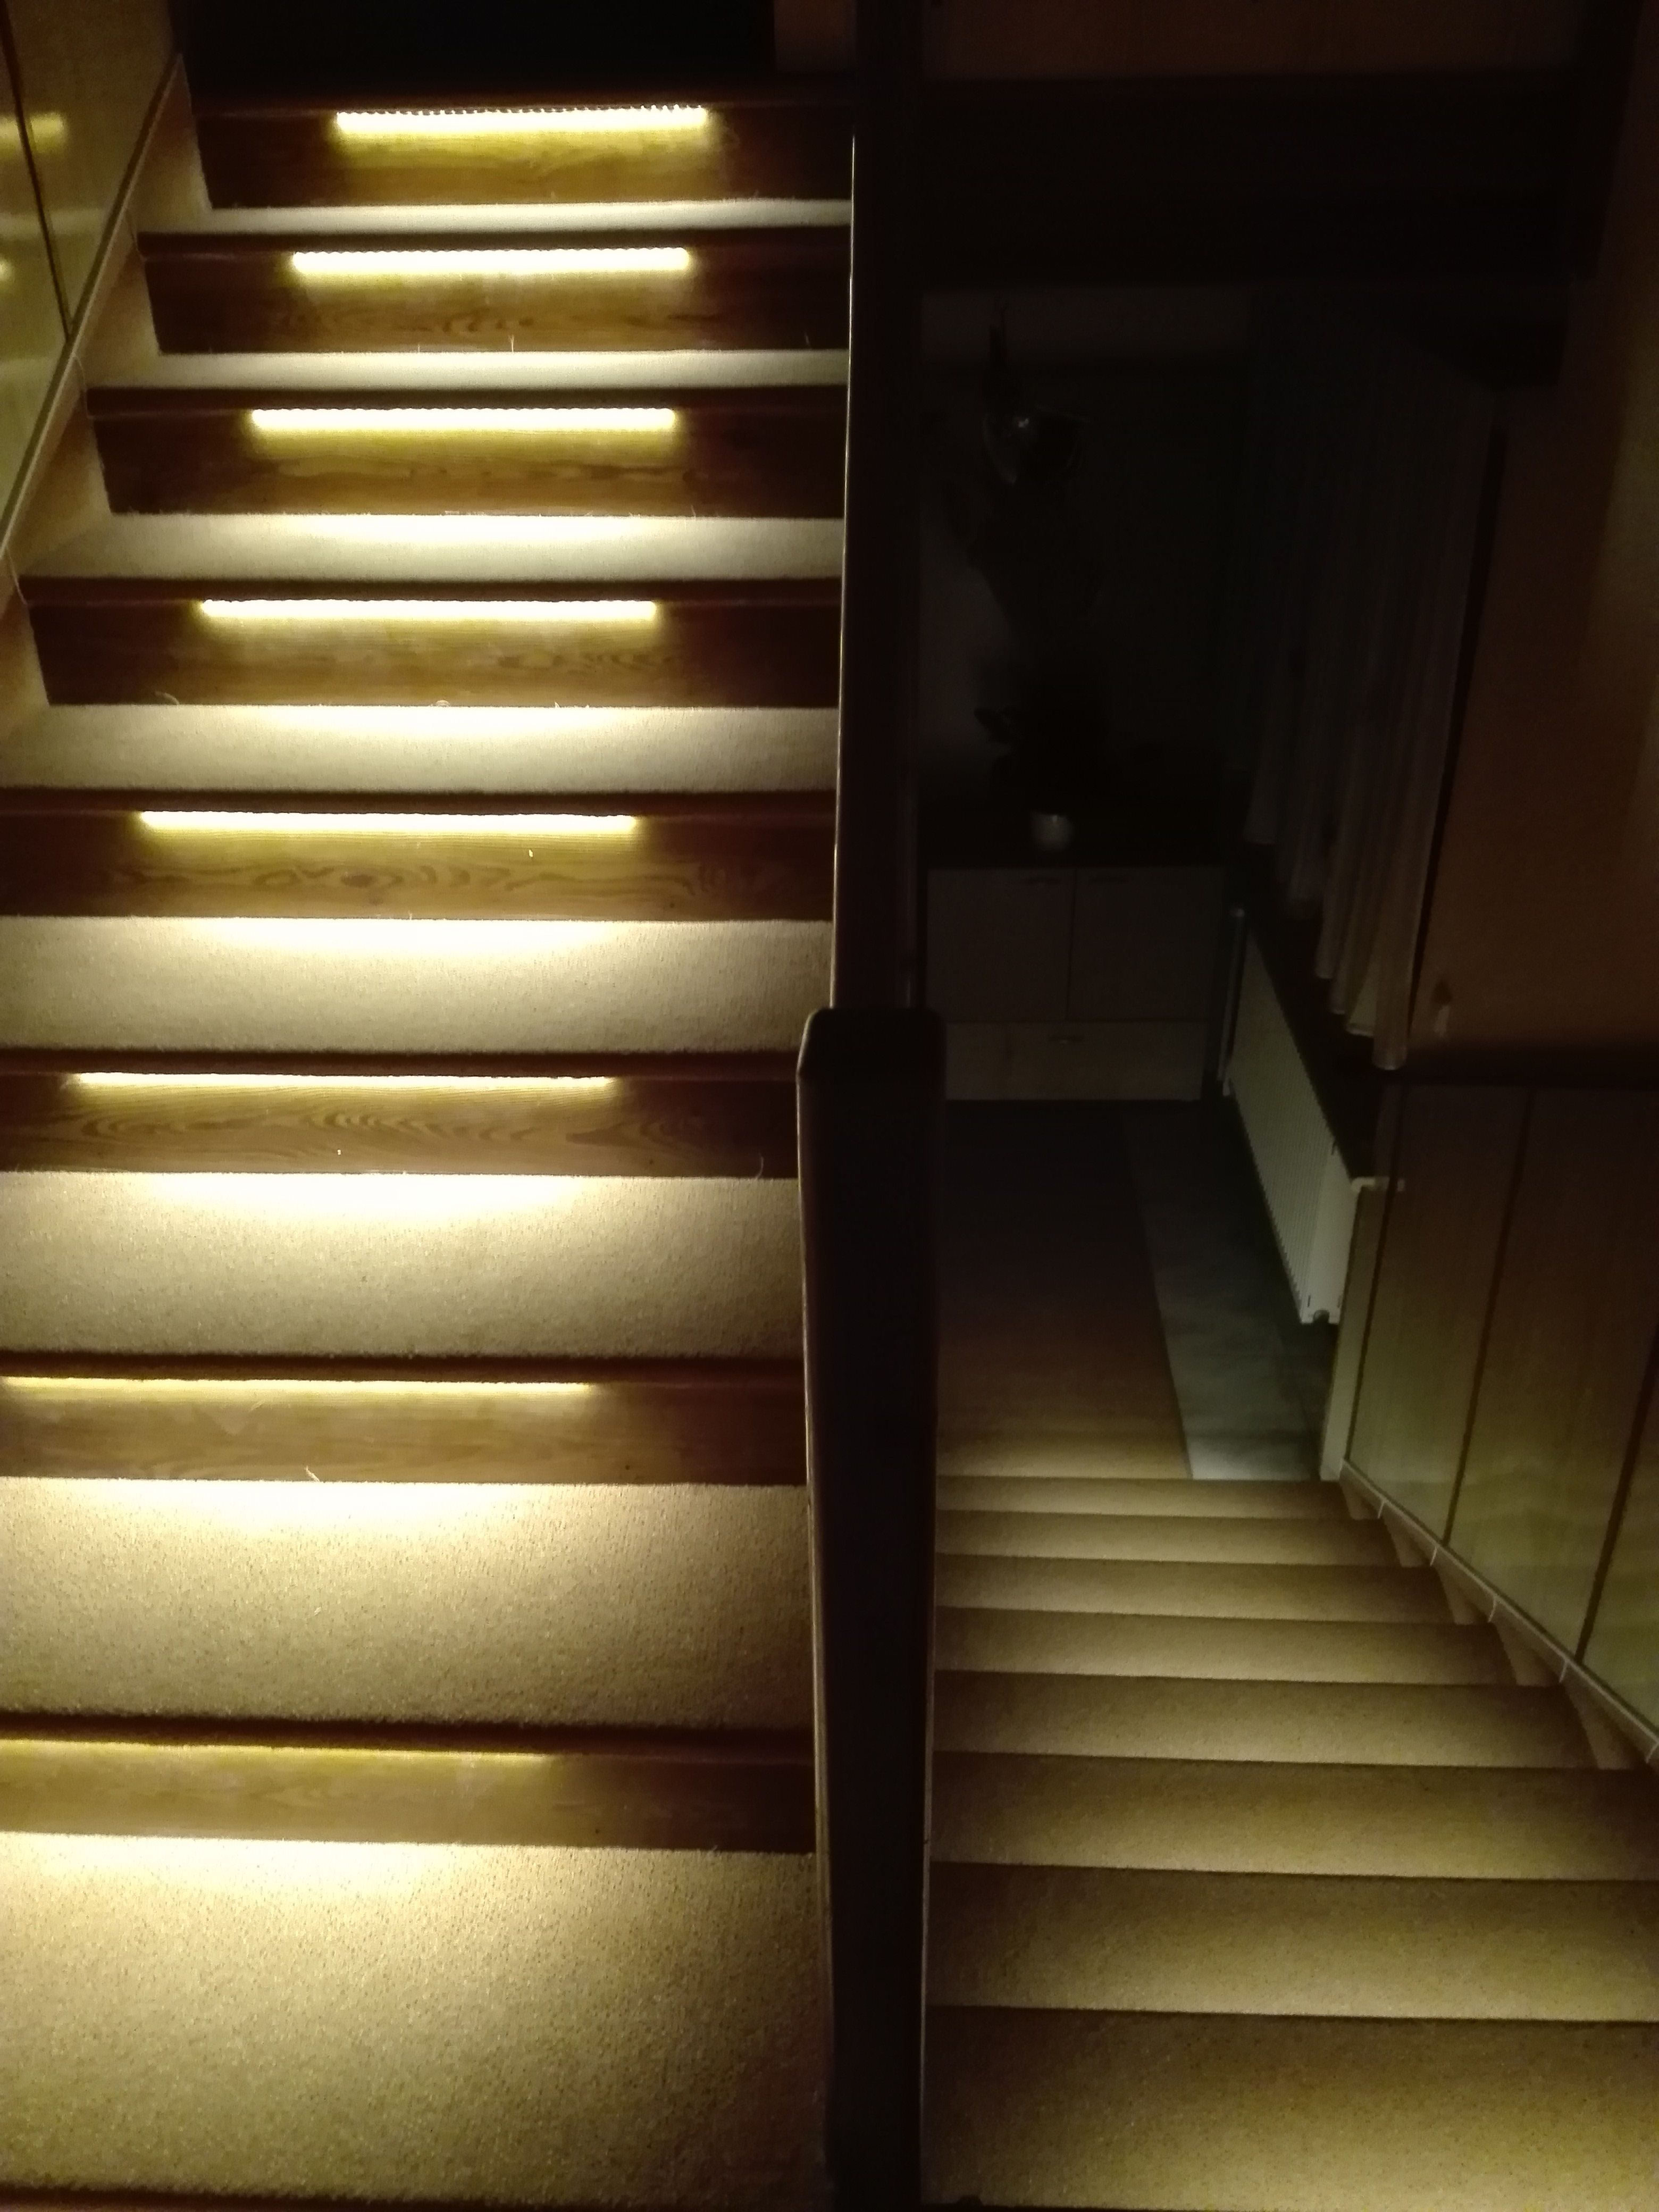 Staircase Lighting With Led Strip Lights 5050 Ledstrip Strip Ledtape Tape Rgb Rgbled Rgbledstrip Rgbstr Led Strip